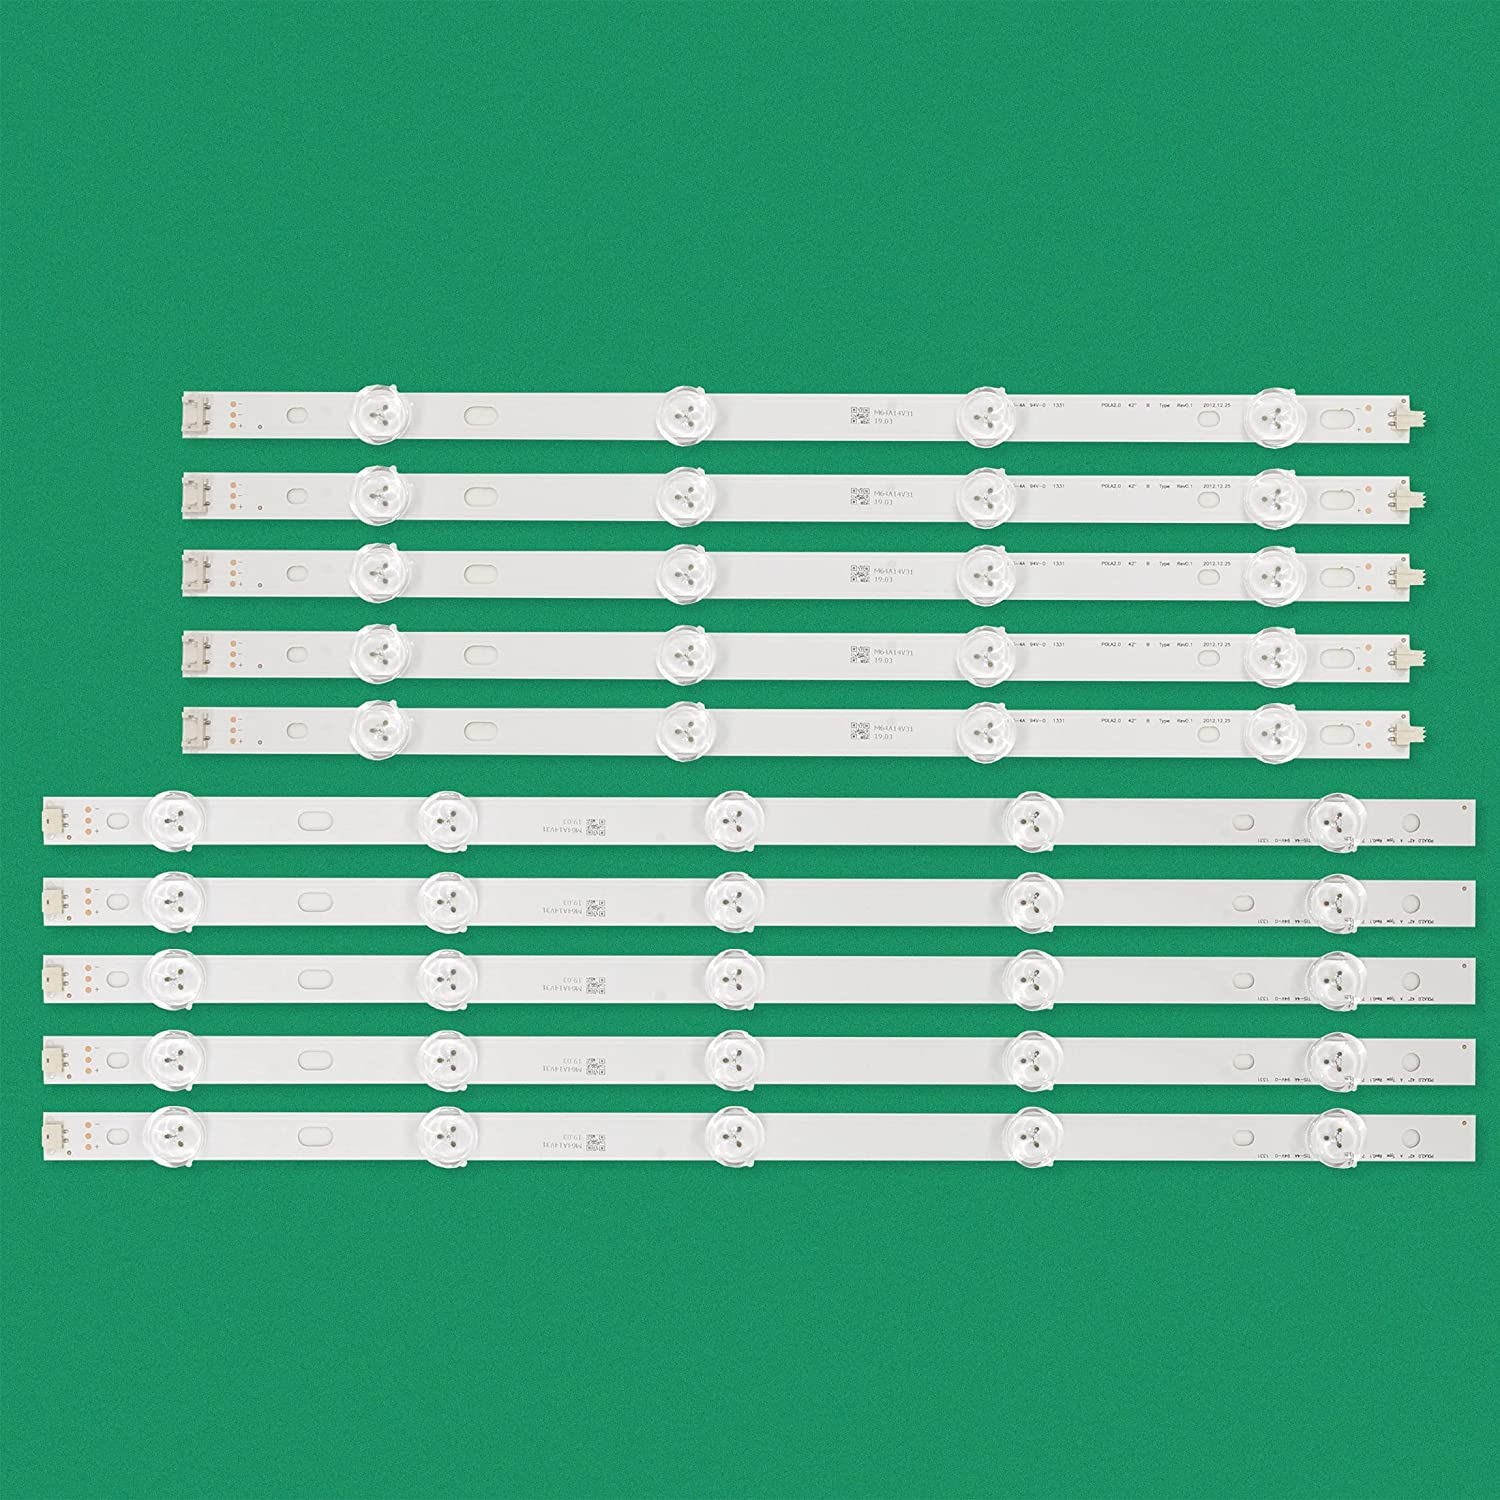 Replacement Part for TV LED Inch INN Backlight Free Large discharge sale Shipping Cheap Bargain Gift LG42 Strip